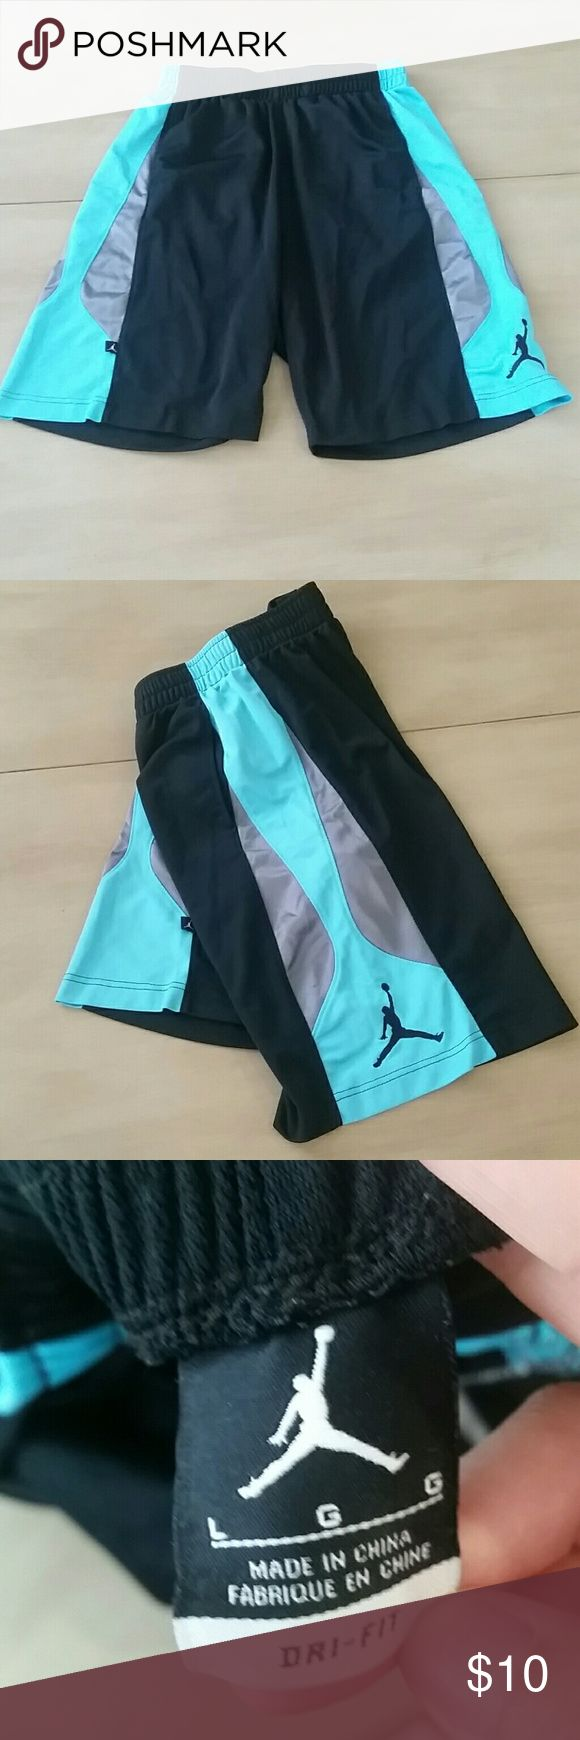 Black & Teal Jordan Basketball Shorts These are authentic Jordan Basketball Shorts. No issues with the wear of the fabric. Only thing, there is no drawstring for the shorts. Size Men's large. Jordan Shorts